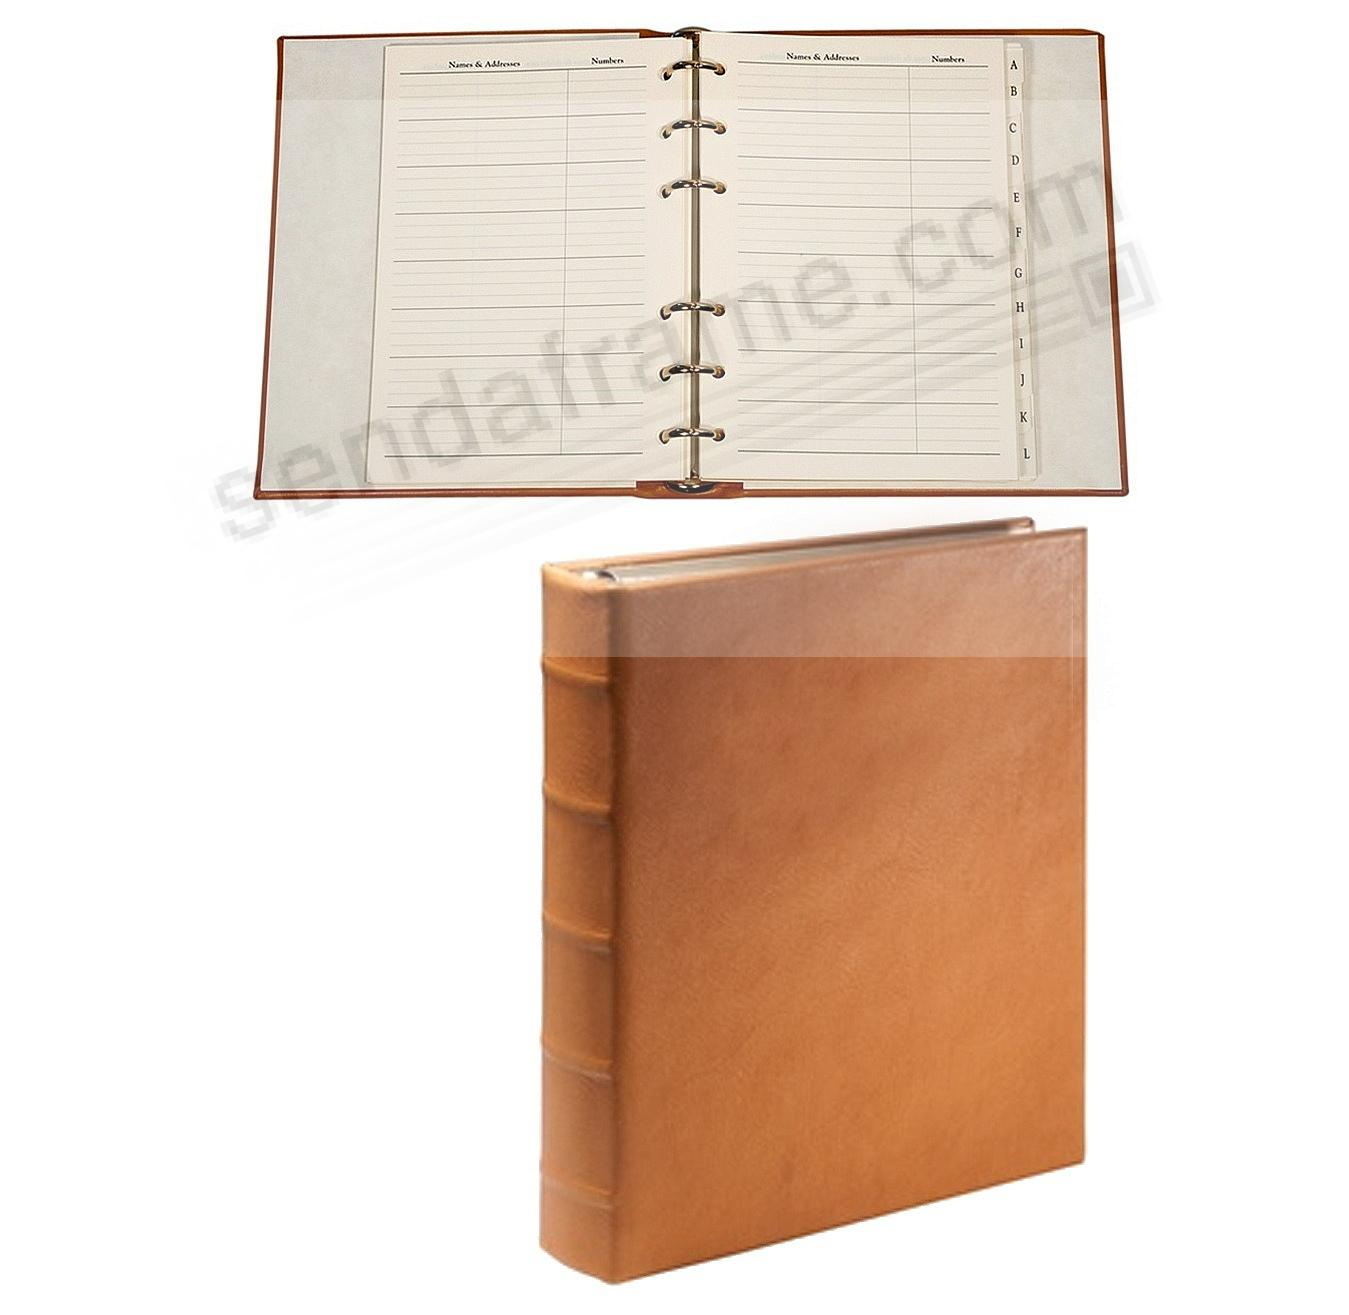 Desk Address Book - Refillable -BRITISH-TAN Calfskin Leather by Graphic Image™